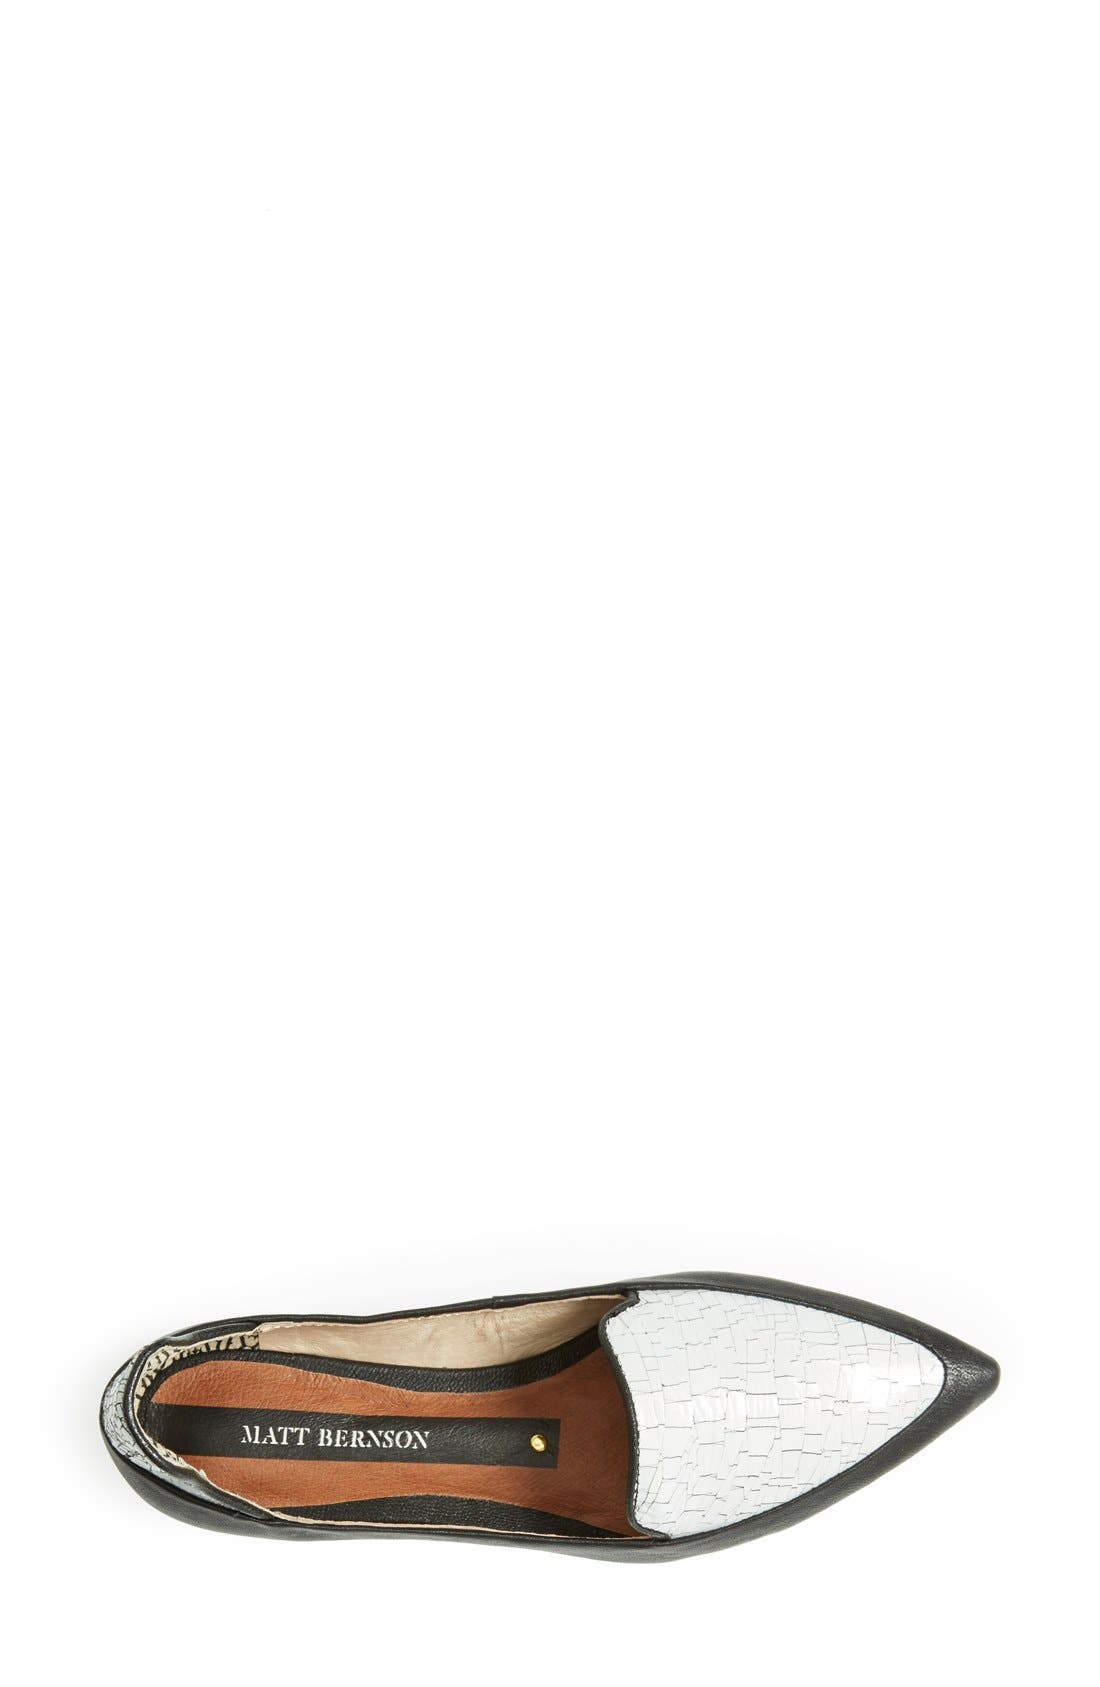 Alternate Image 3  - Matt Bernson 'Verona' Leather Loafer (Women)